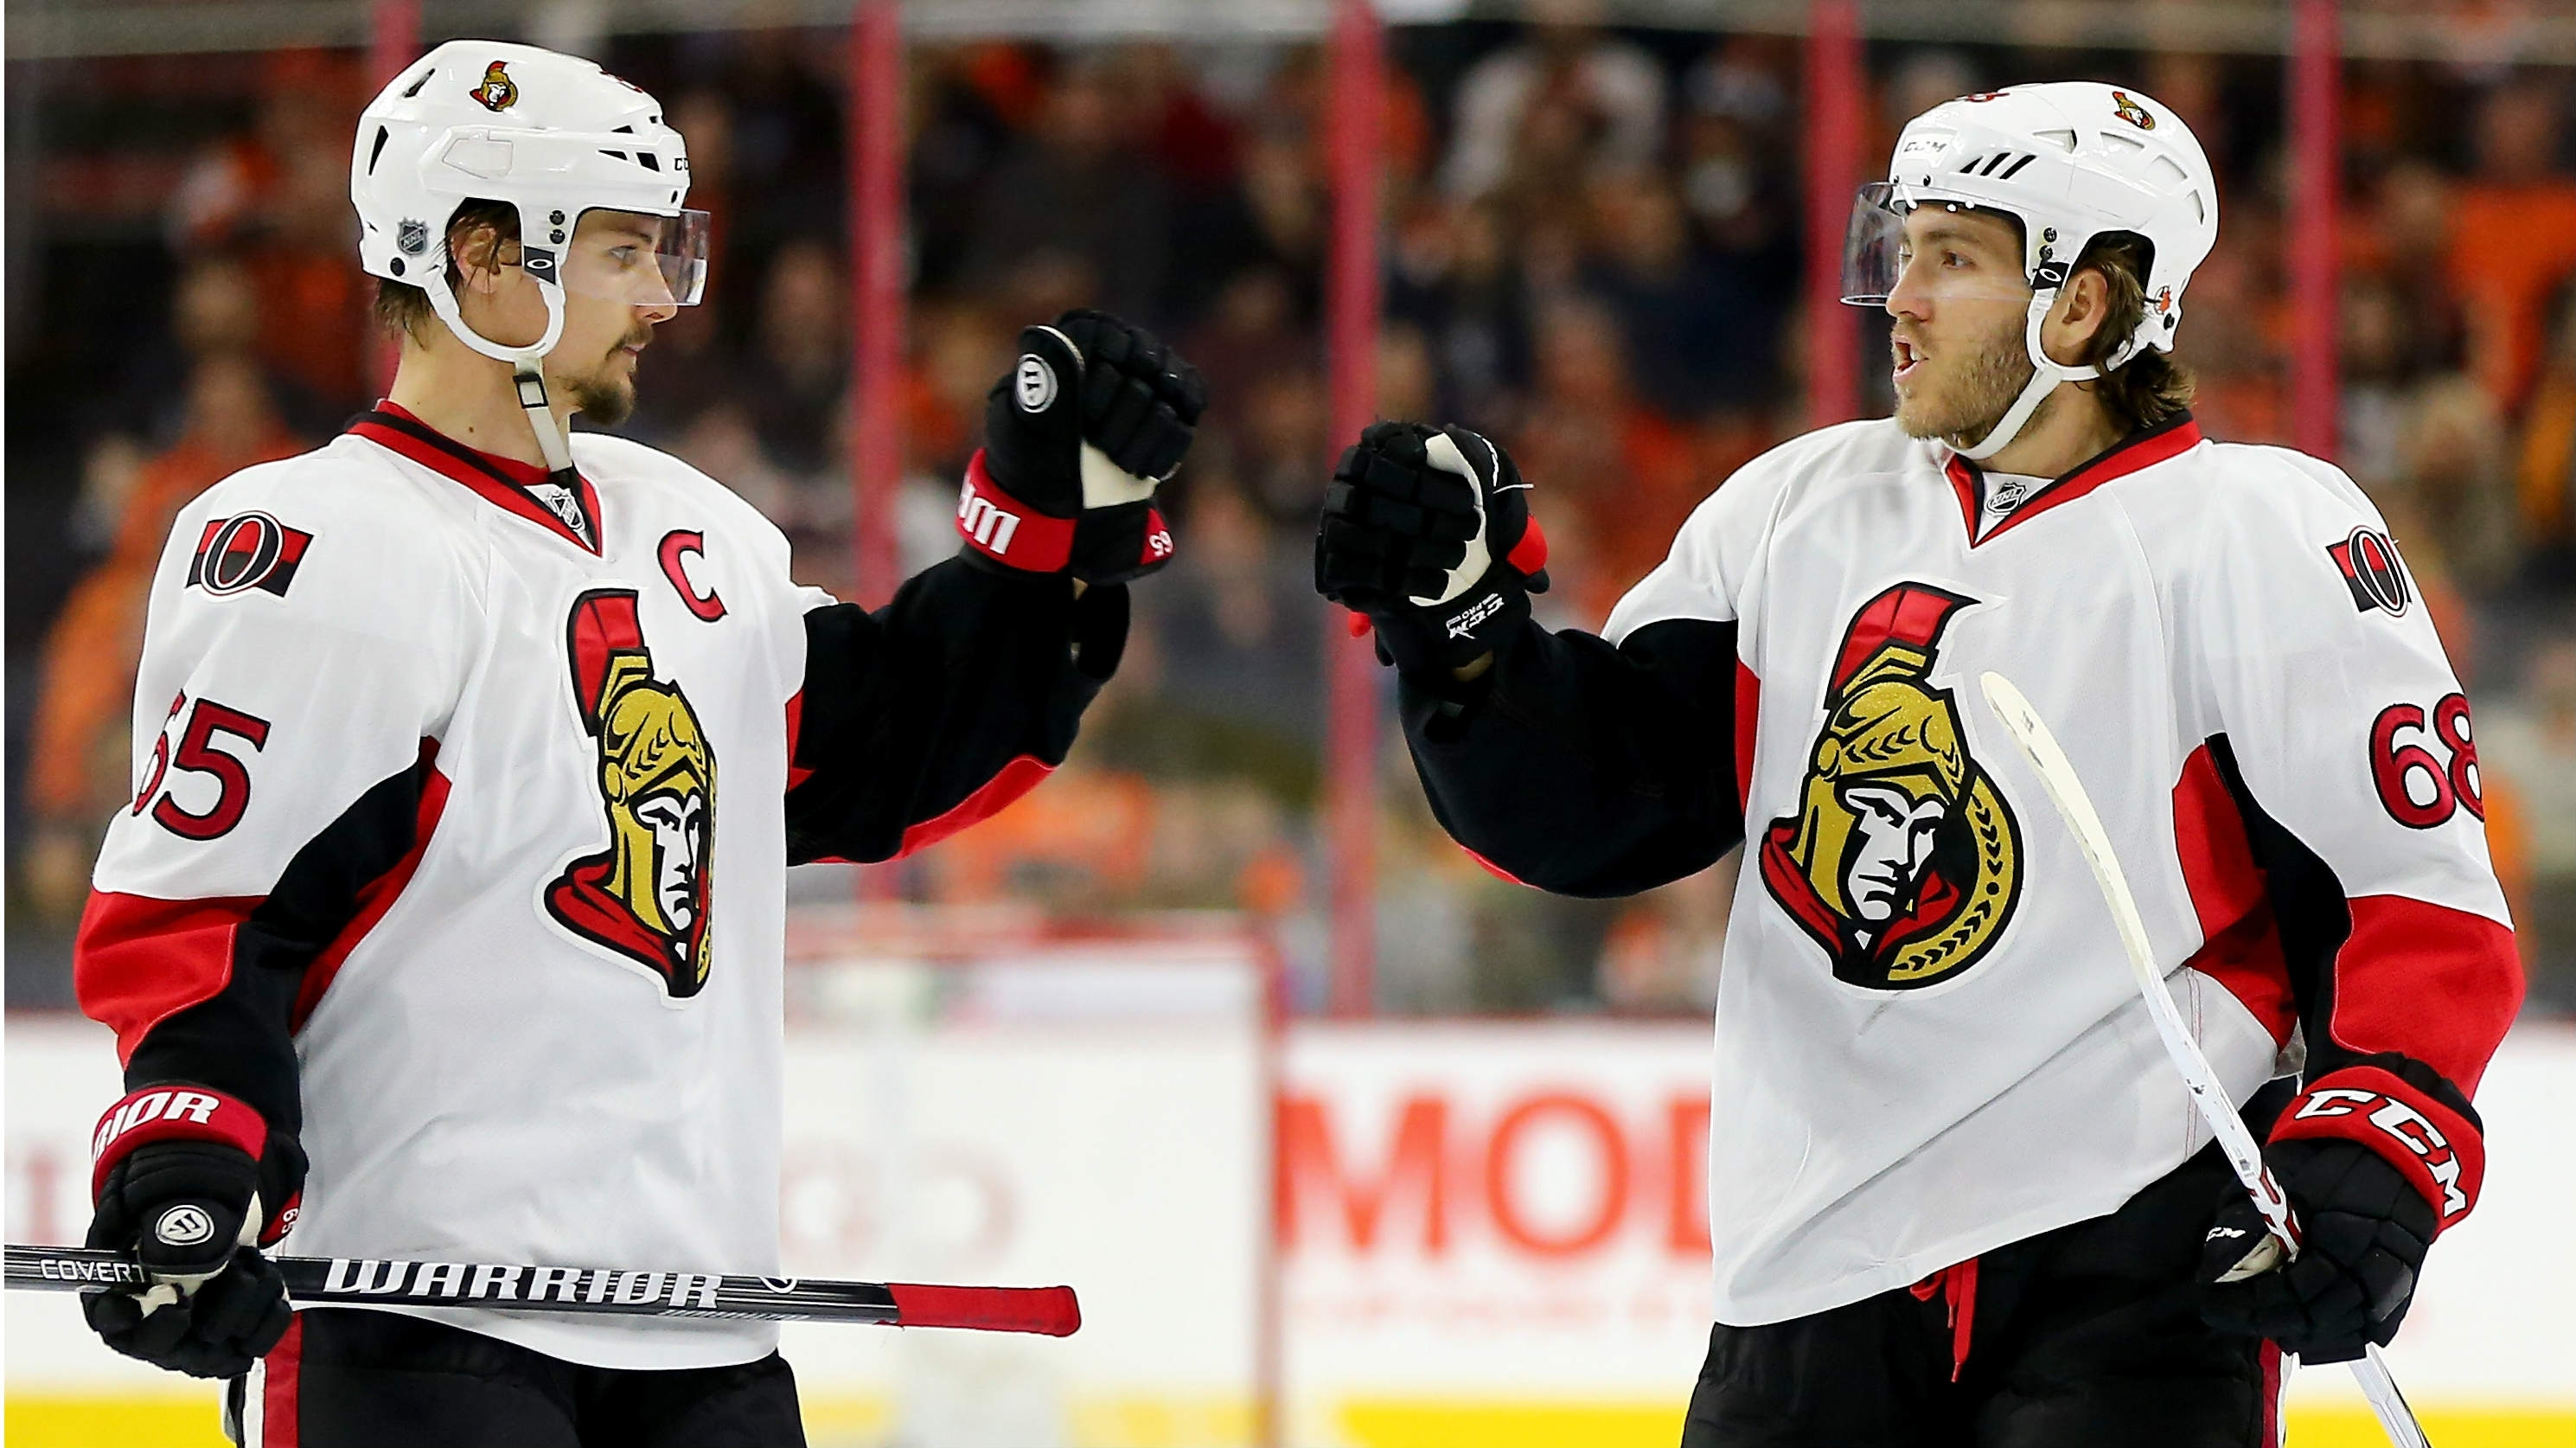 Senators trade Mike Hoffman amid cyberbullying allegations against fiancee